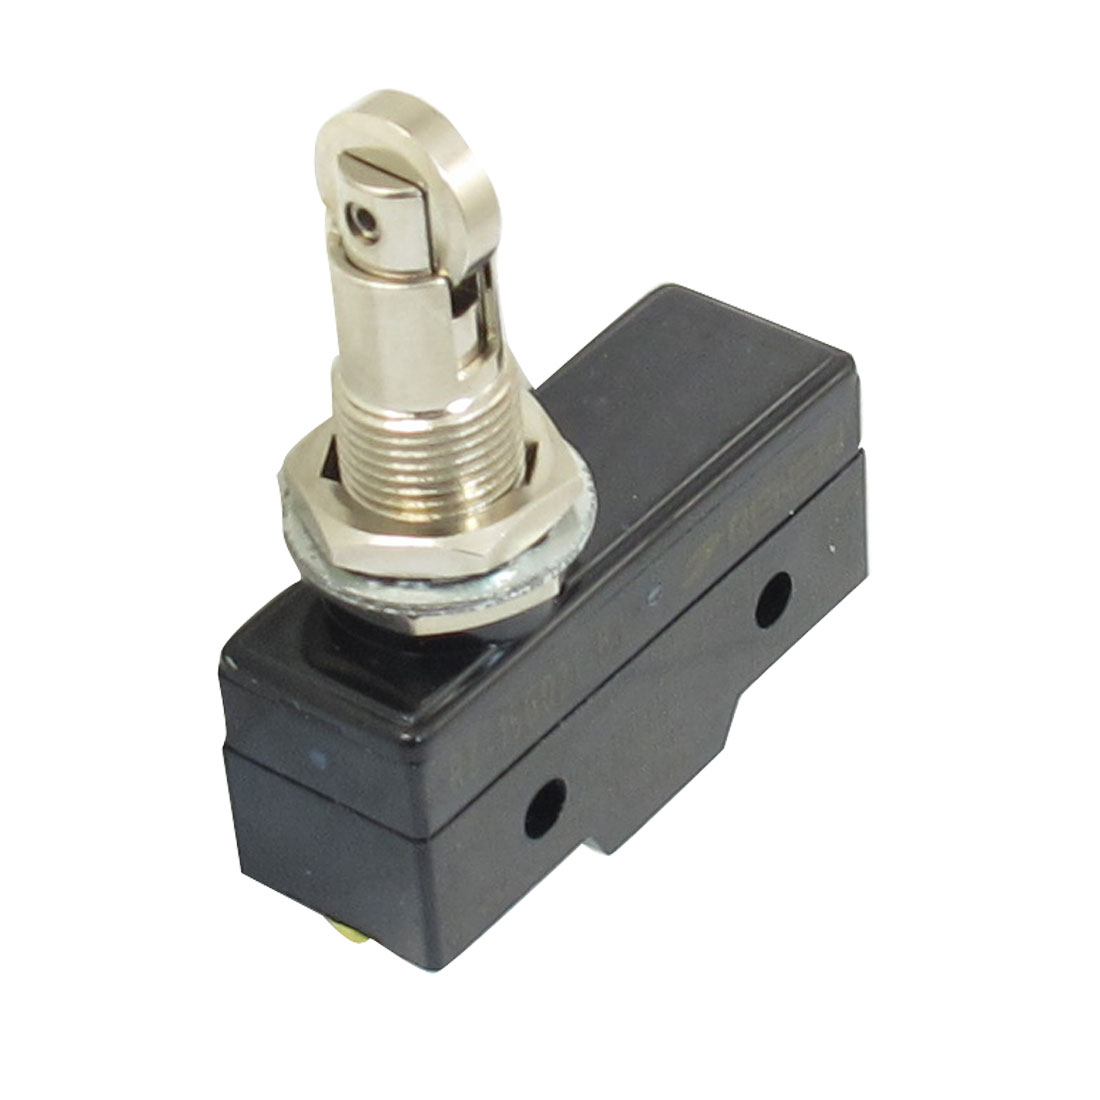 AC 250V 15A 1 NO 1 NC 1Com SPDT Momentary Cross Roller Plunger Micro Switch